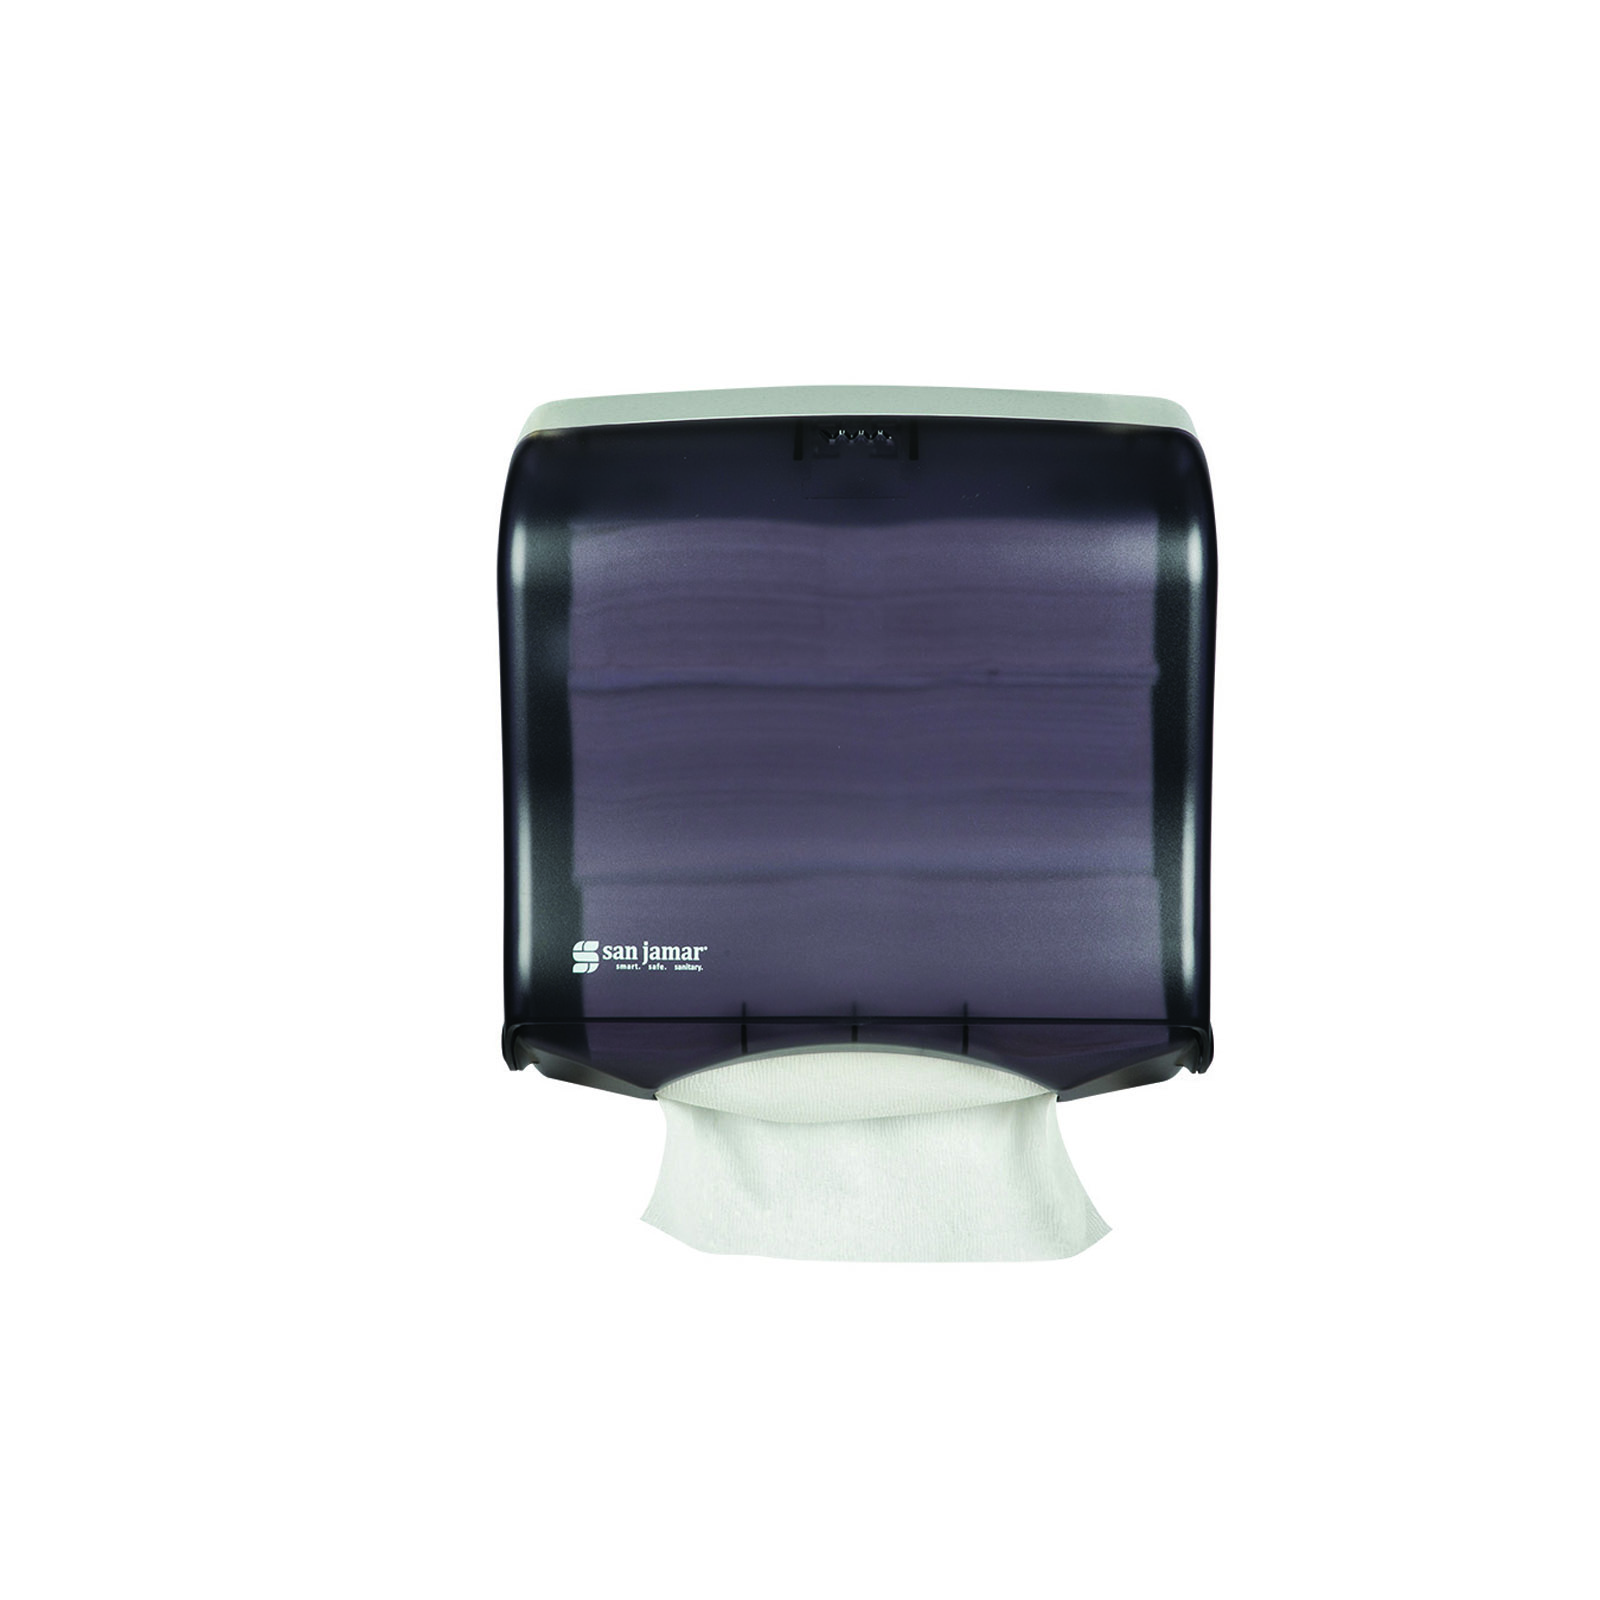 San Jamar T1755TBK paper towel dispenser